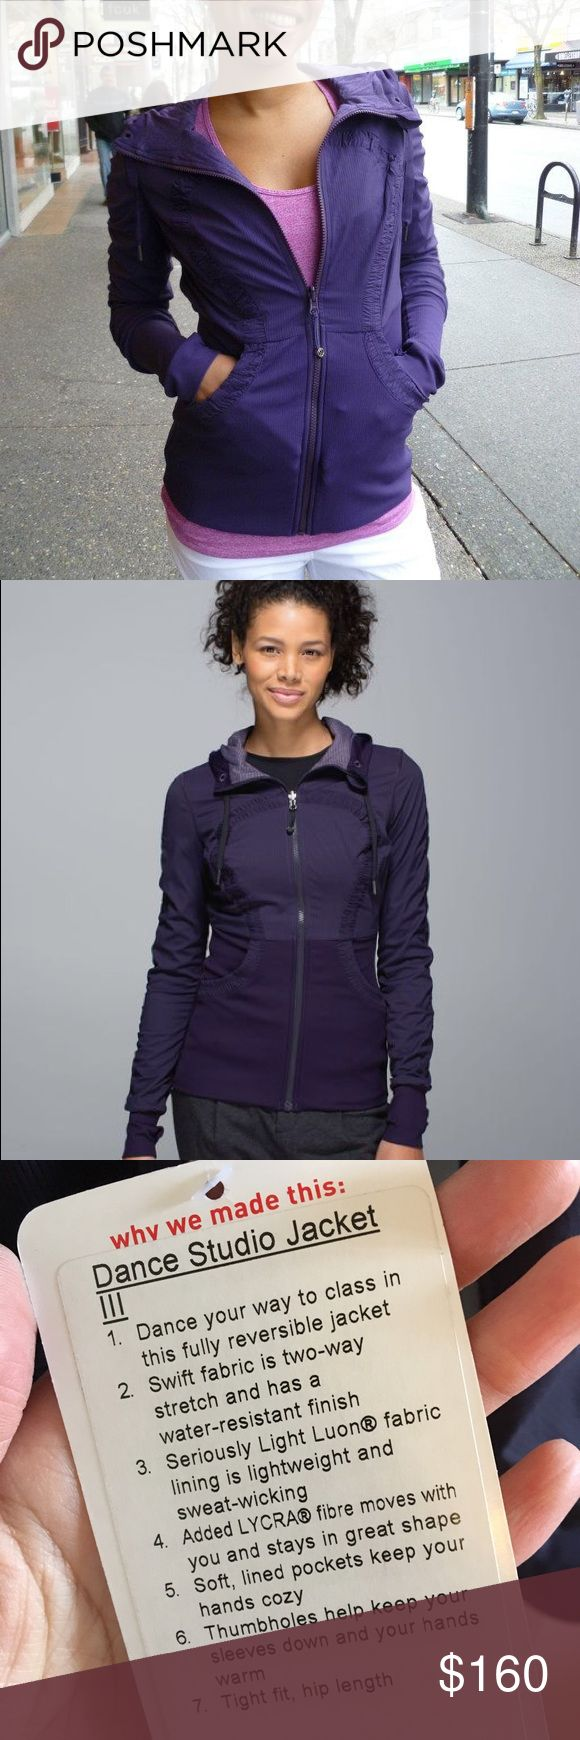 Read description - Lululemon dance studio jacket Lululemon dance studio jacket size 8 new with tags in black swan (color was later renamed to black grape due to proprietary reasons - feel free to Google both color names for accurate color representation or refer to stock photo. Beautiful color I just don't need 10 of these jackets. NOTE ::: priced higher to cover tax and 20% Posh fees - I'd like to get what I paid for thanks for understanding! lululemon athletica Jackets & Coats